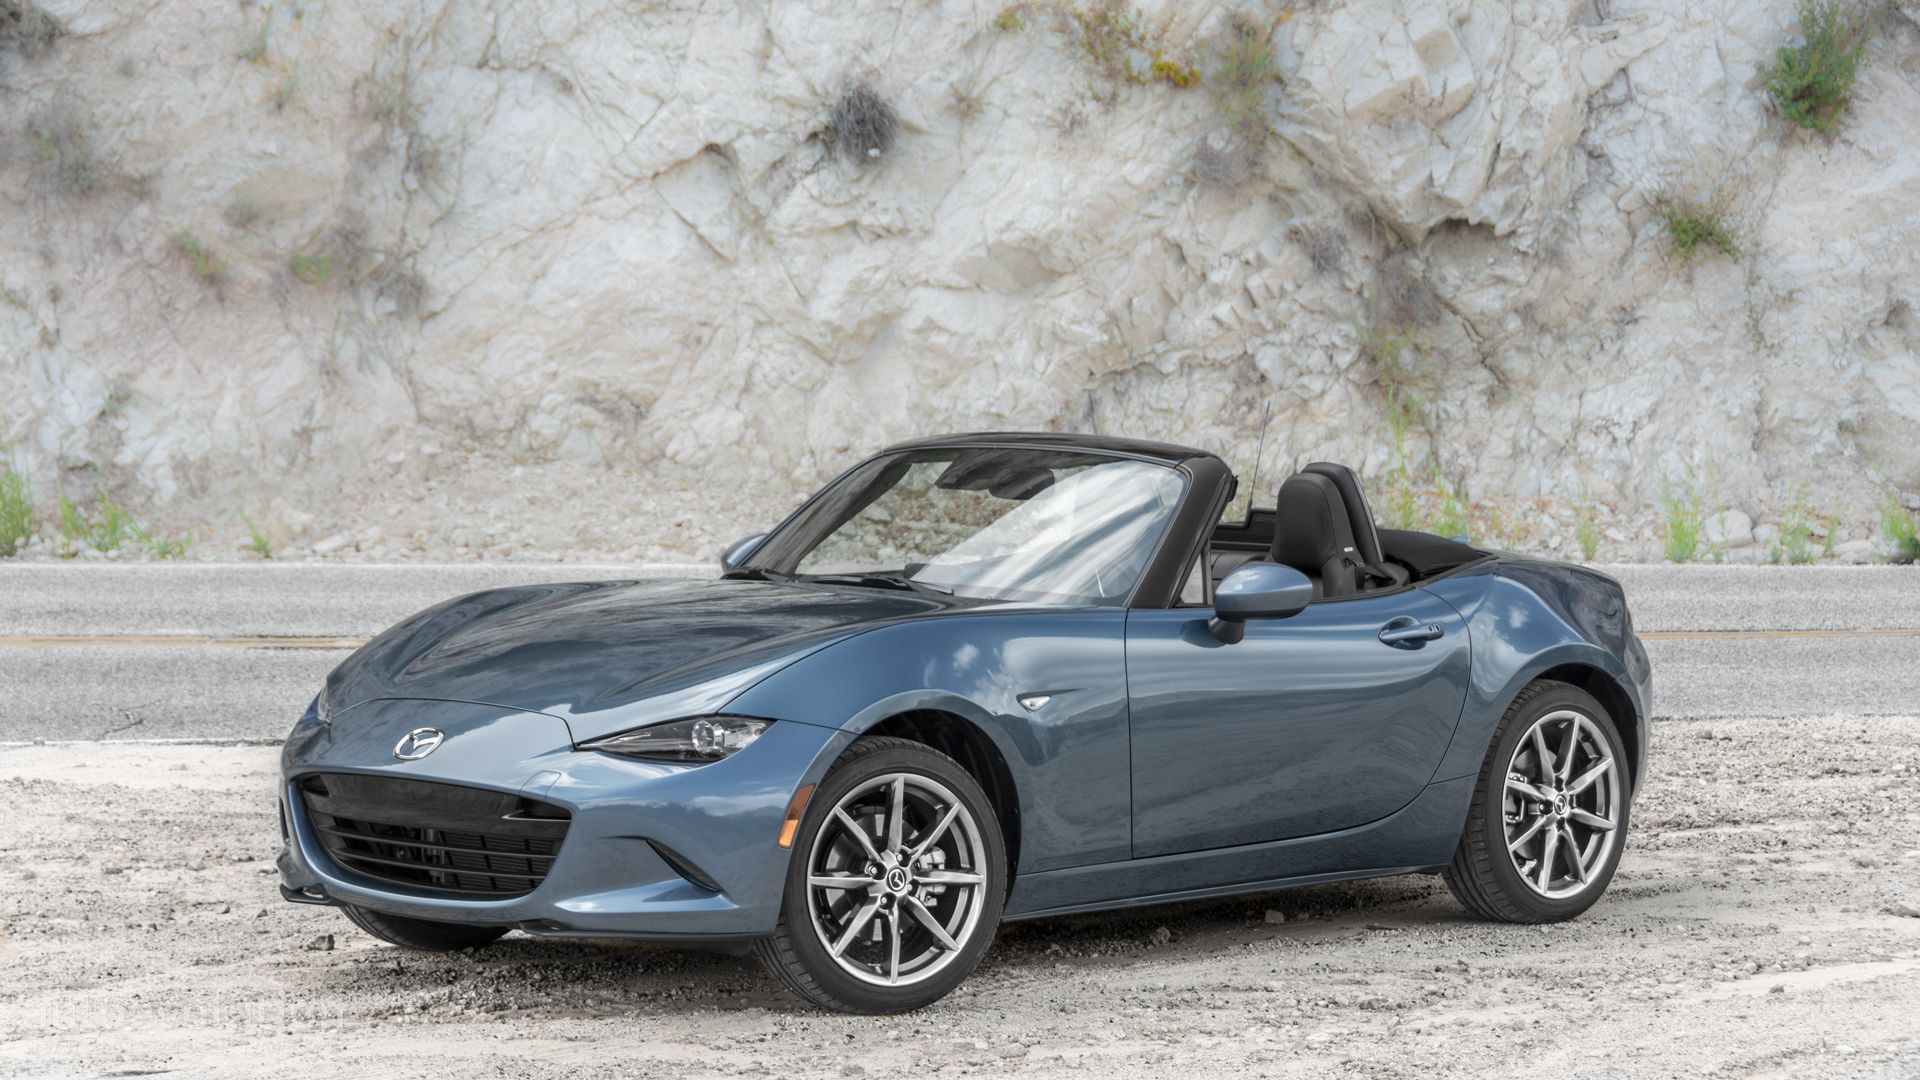 2016 mazda mx 5 miata review autoevolution. Black Bedroom Furniture Sets. Home Design Ideas